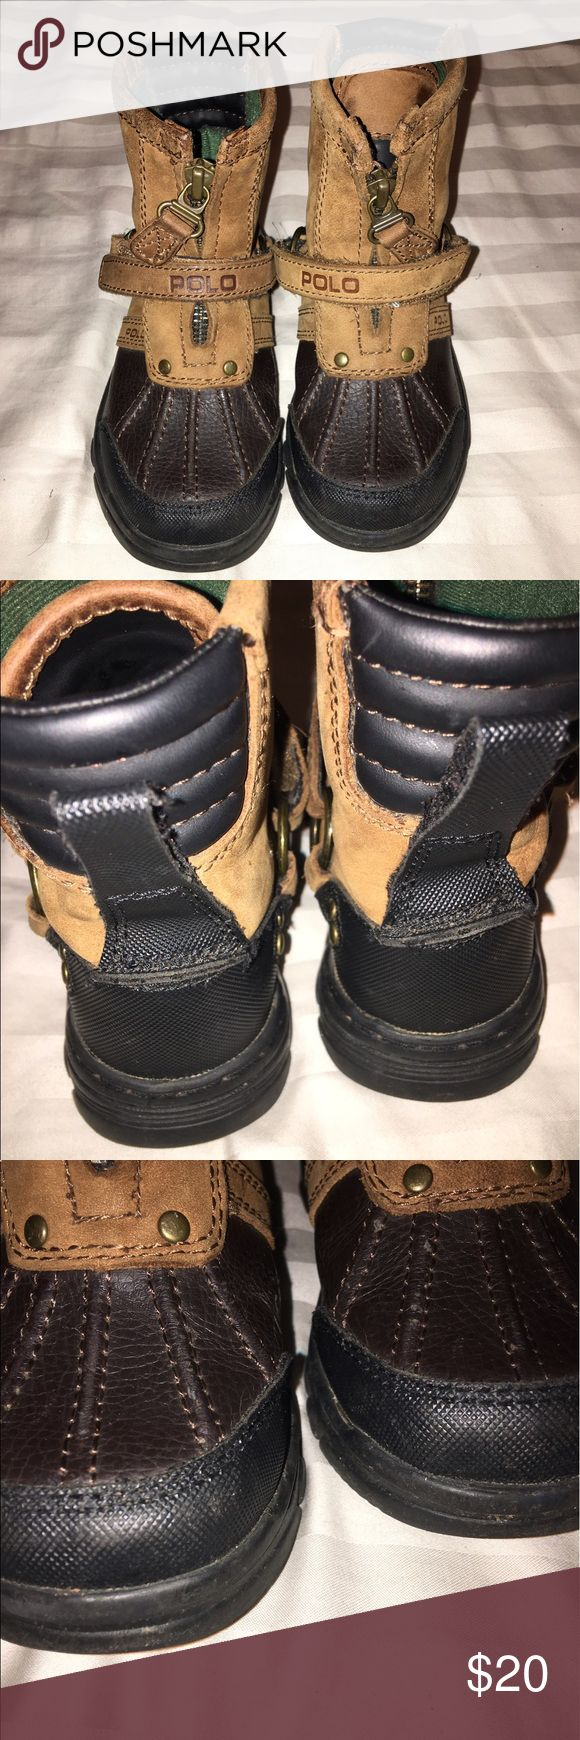 EUC! Boys Polo Boots! Toddler Size 9 Tan Suede on Upper part of the shoe, dark brown leather on bottom. Only worn a few times. Polo by Ralph Lauren Shoes Boots